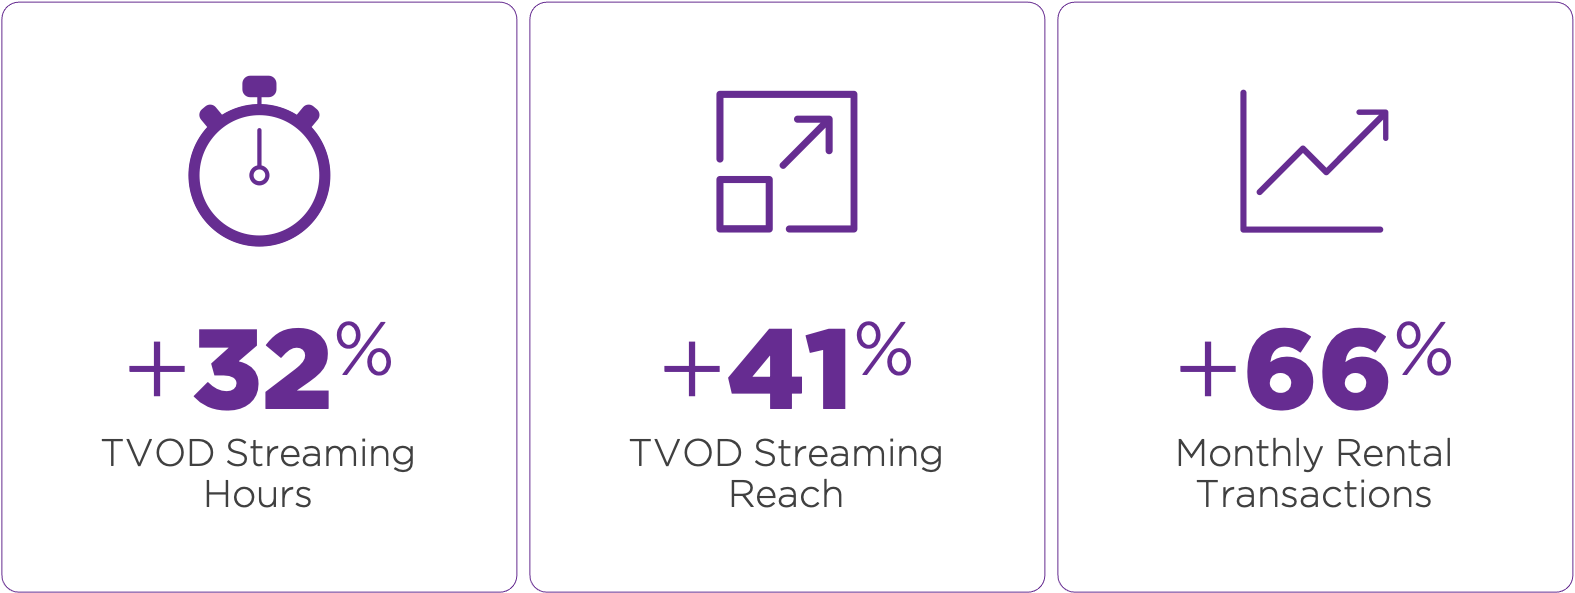 +32% TVOD streaming hours, +41% TVOD Streaming Reach, +66% Monthly Rental Transactions